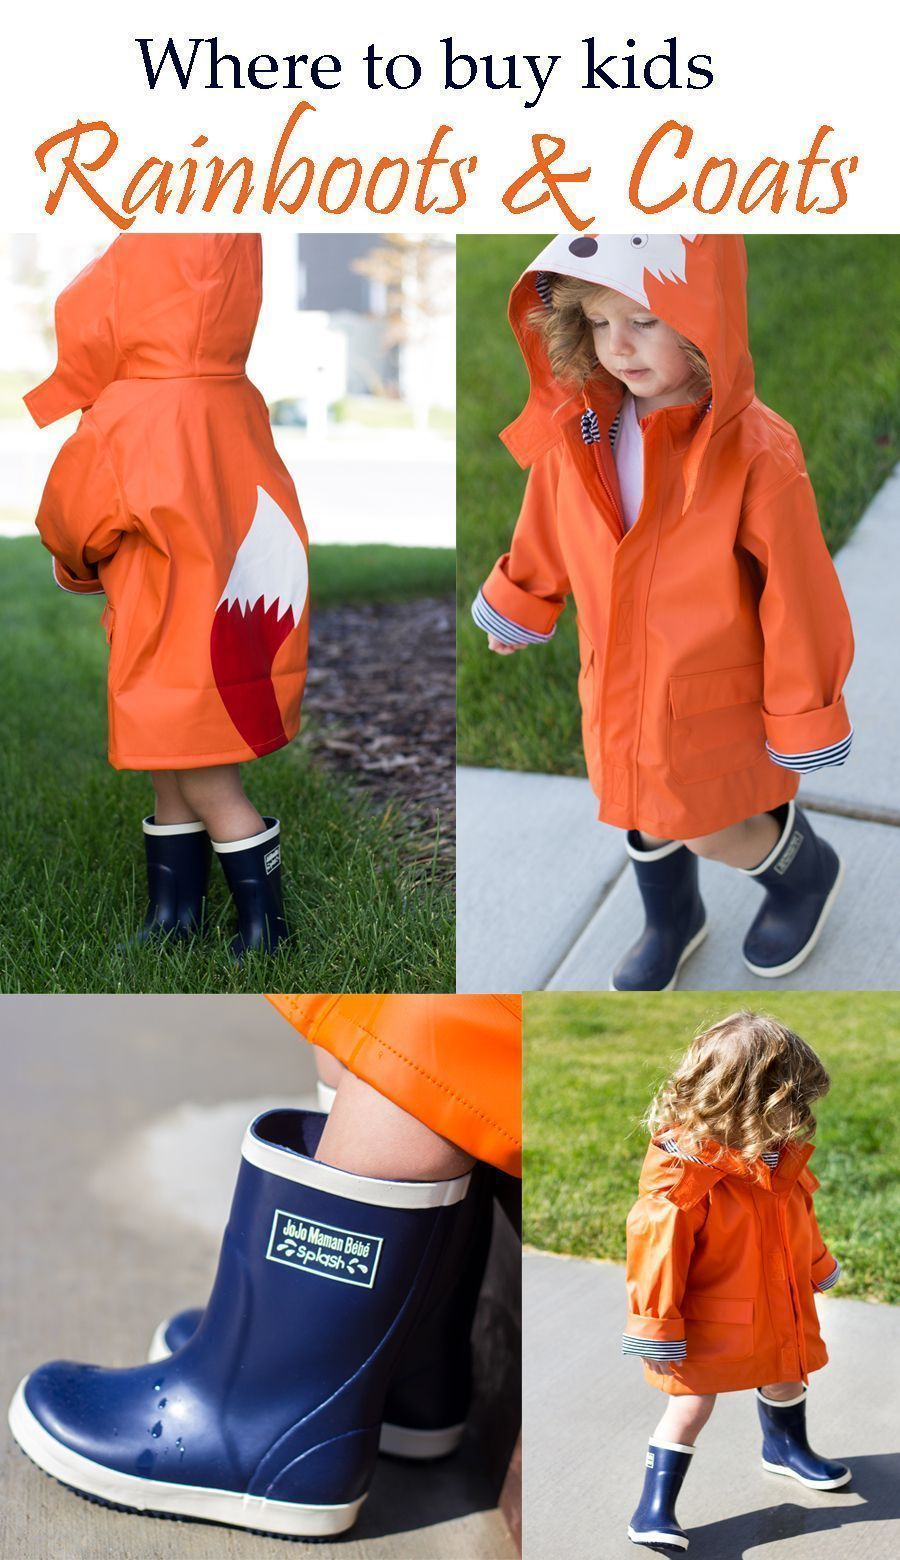 Toddler Rainboots And Raincoats Toddler Outfits Fox Outfits Fox Raincoats How To Style Raincoats Ra Raincoat Kids Cute Outfits For Kids Toddler Rain Boots